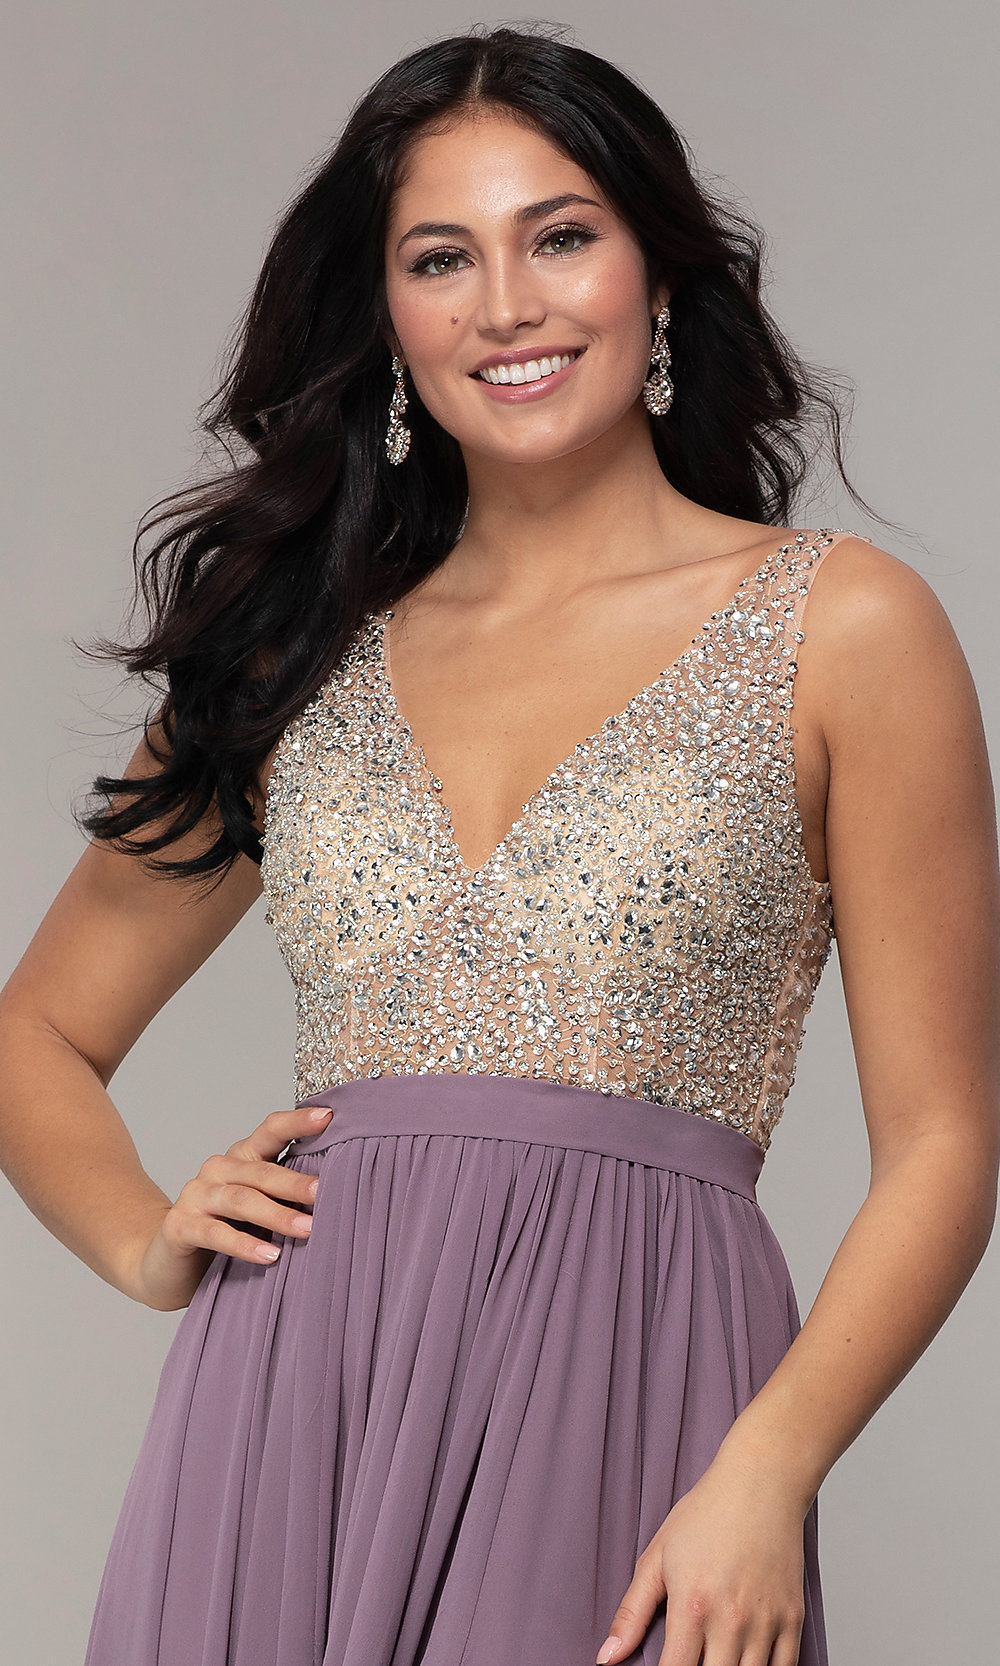 212c0986888 ... chiffon v-neck embellished-bodice prom dress. Style  SOI. Tap to expand